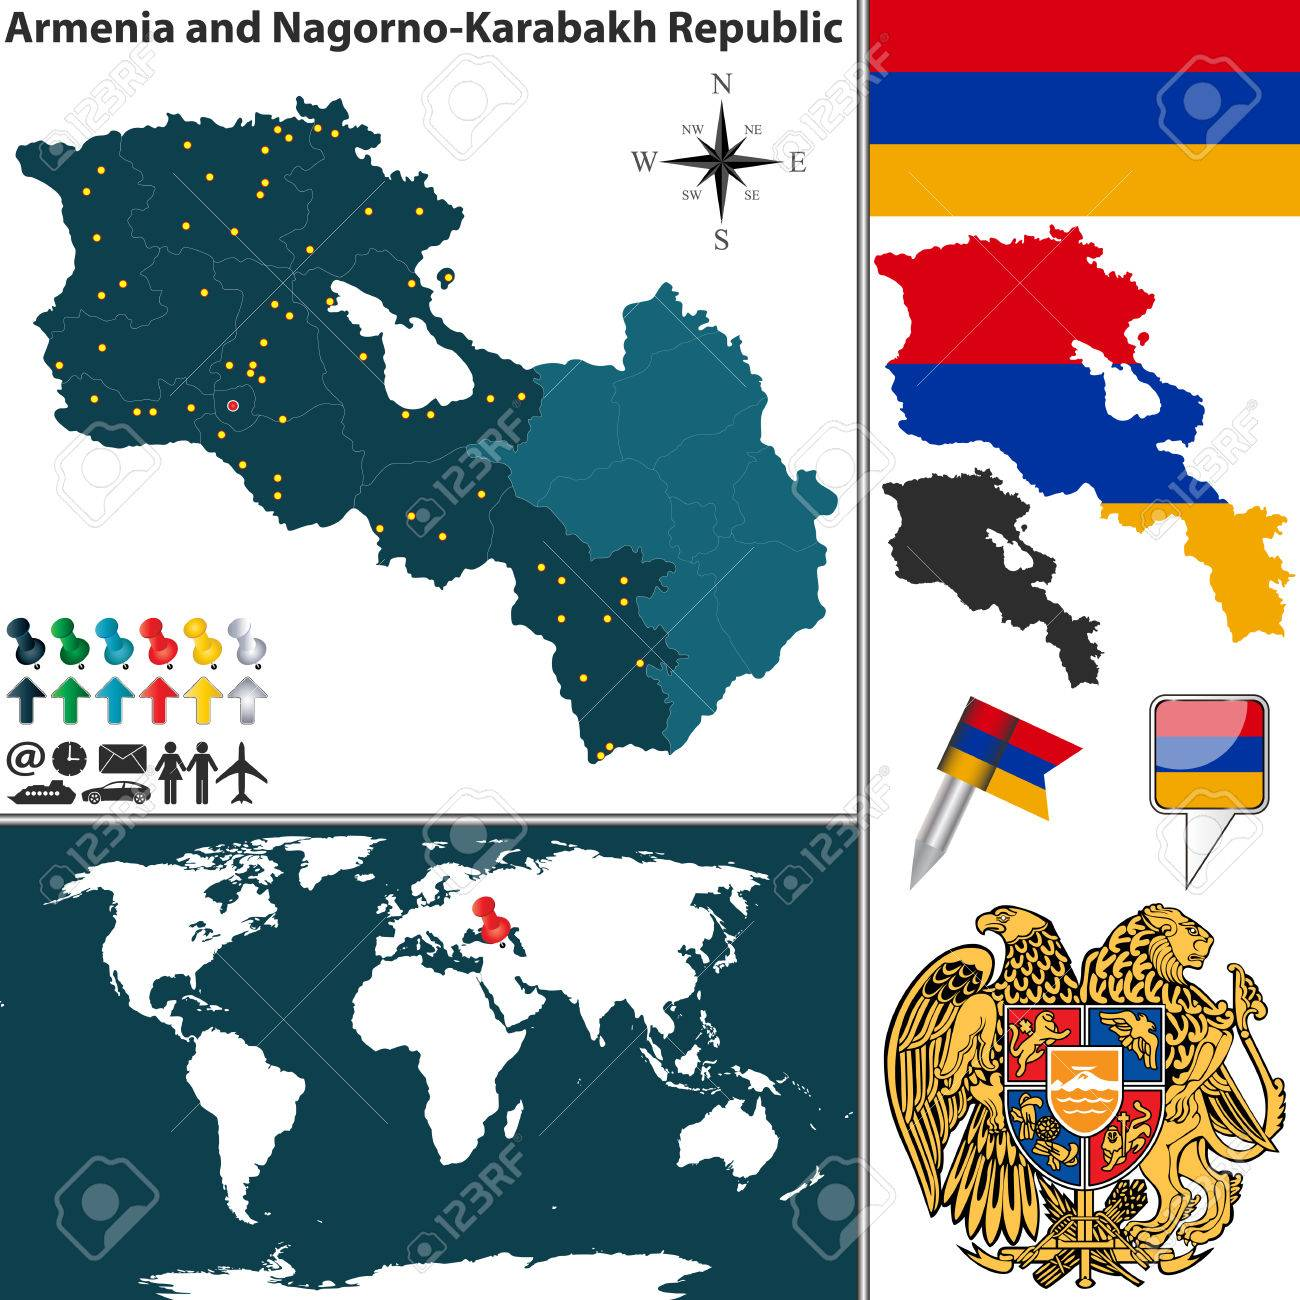 Picture of: Vector Map Of Armenia Nagorno Karabakh Republic With Regions Royalty Free Cliparts Vectors And Stock Illustration Image 44755128